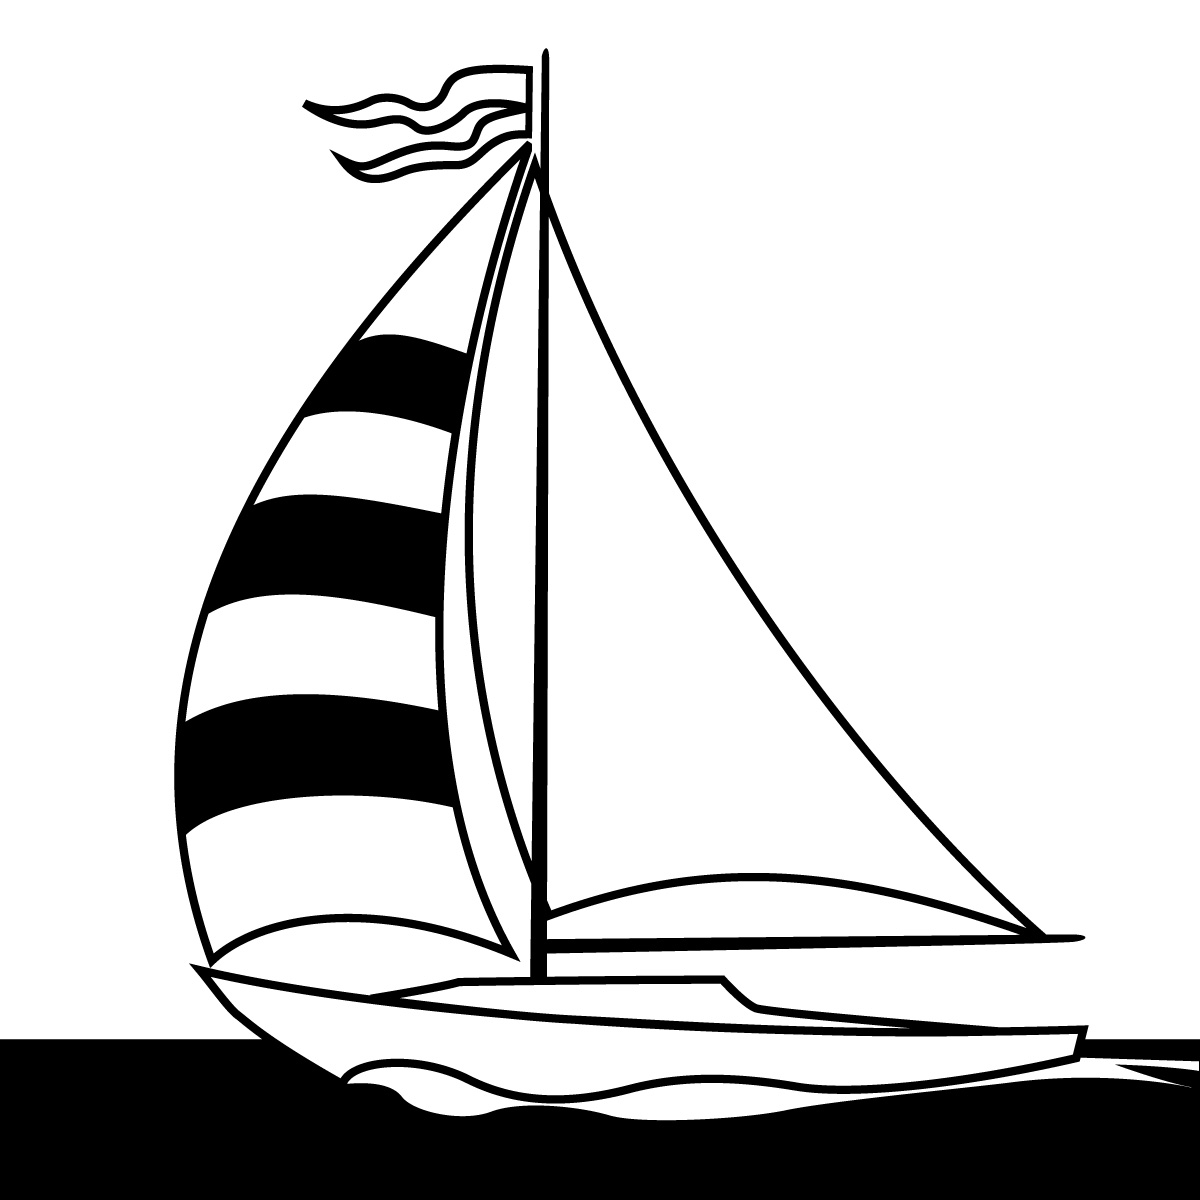 Sailboat clipart navy blue sailboat. Panda free images clip